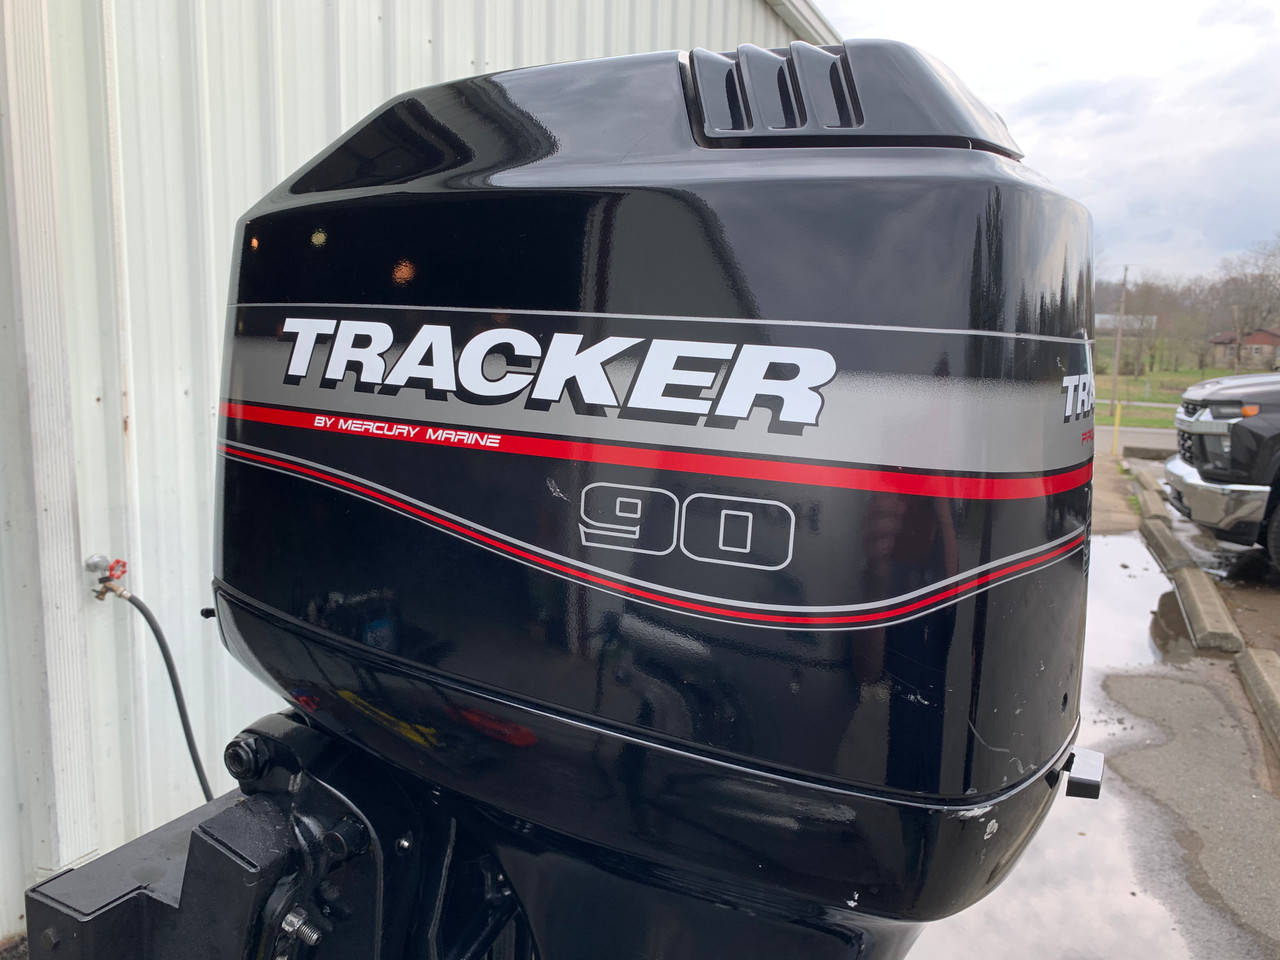 """2002 Mercury Tracker 90 HP 4 Cylinder Carbureted 2 Stroke 20"""" (L) Outboard Motor"""